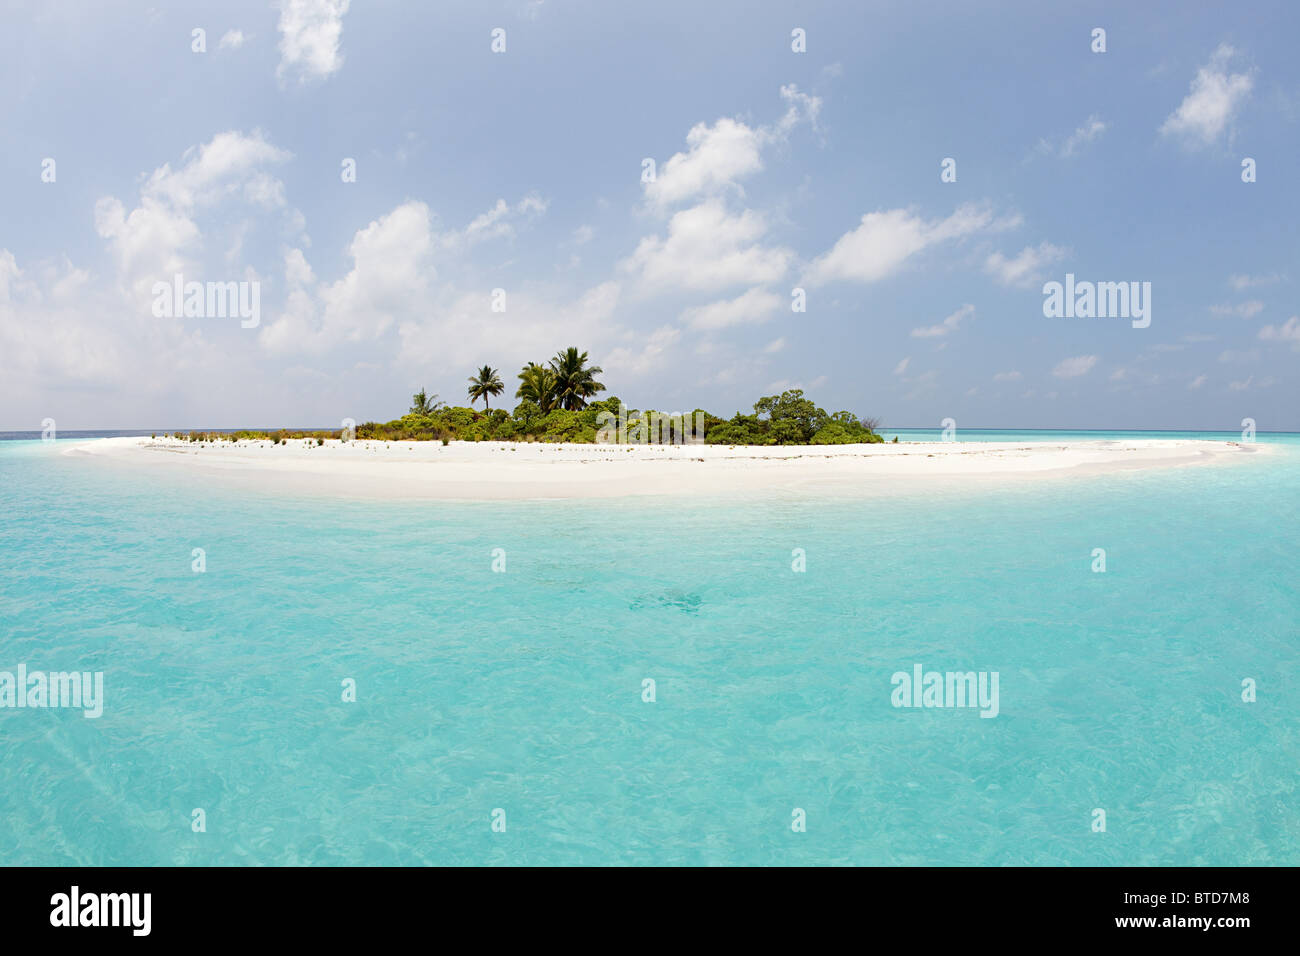 Mathidhoo Island, North Huvadhu Atoll, Maldives - Stock Image